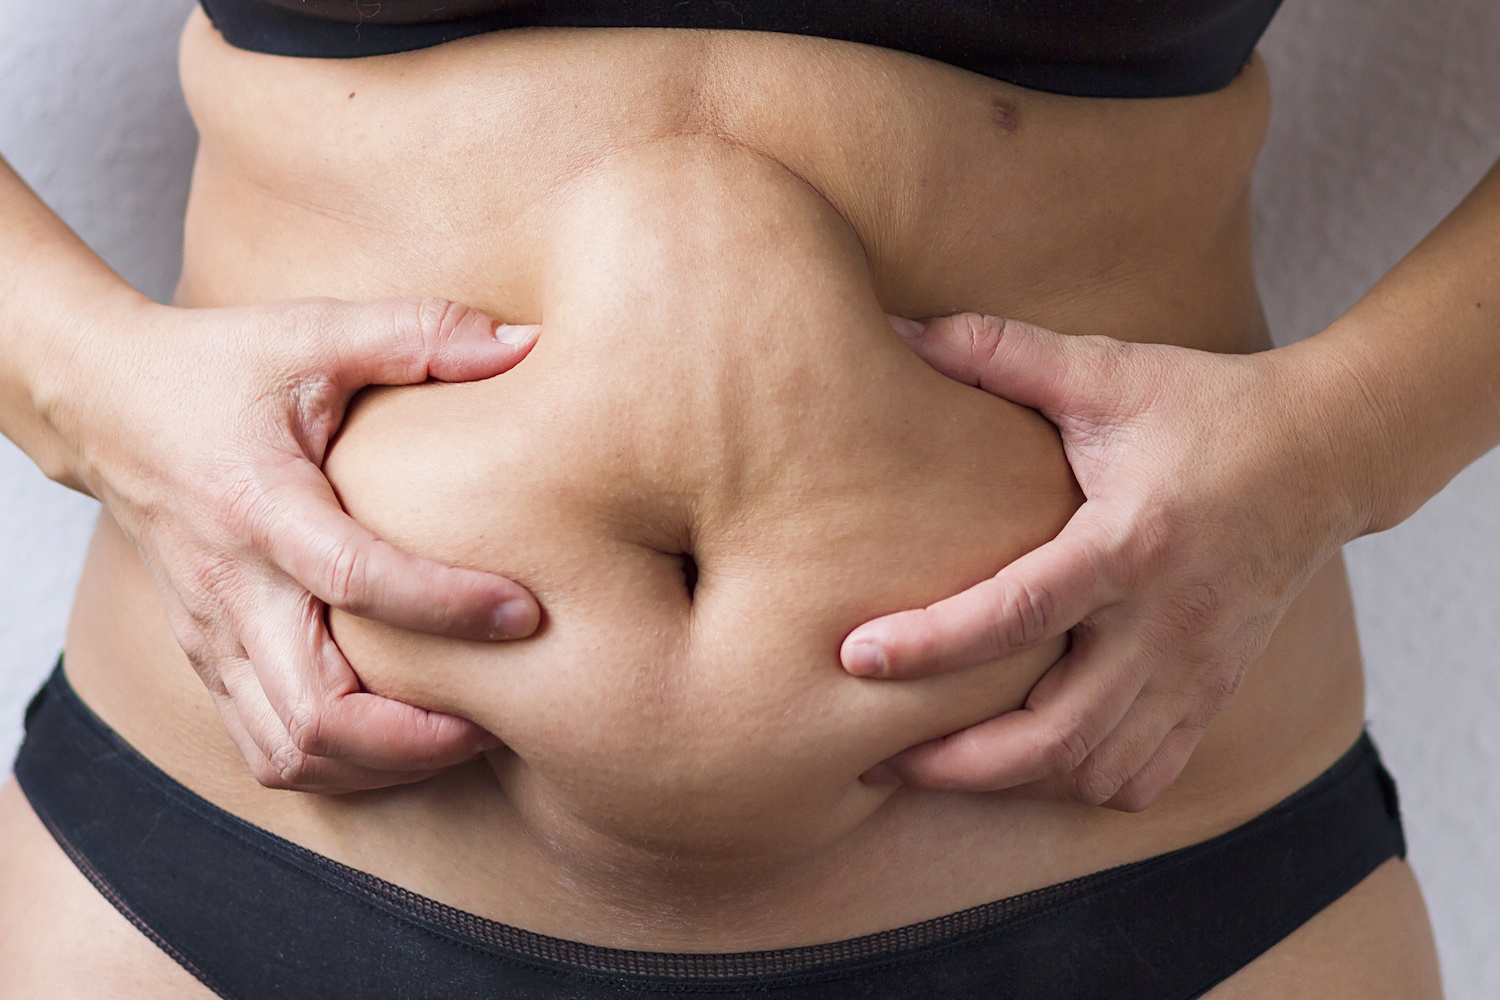 woman squishing loose belly skin